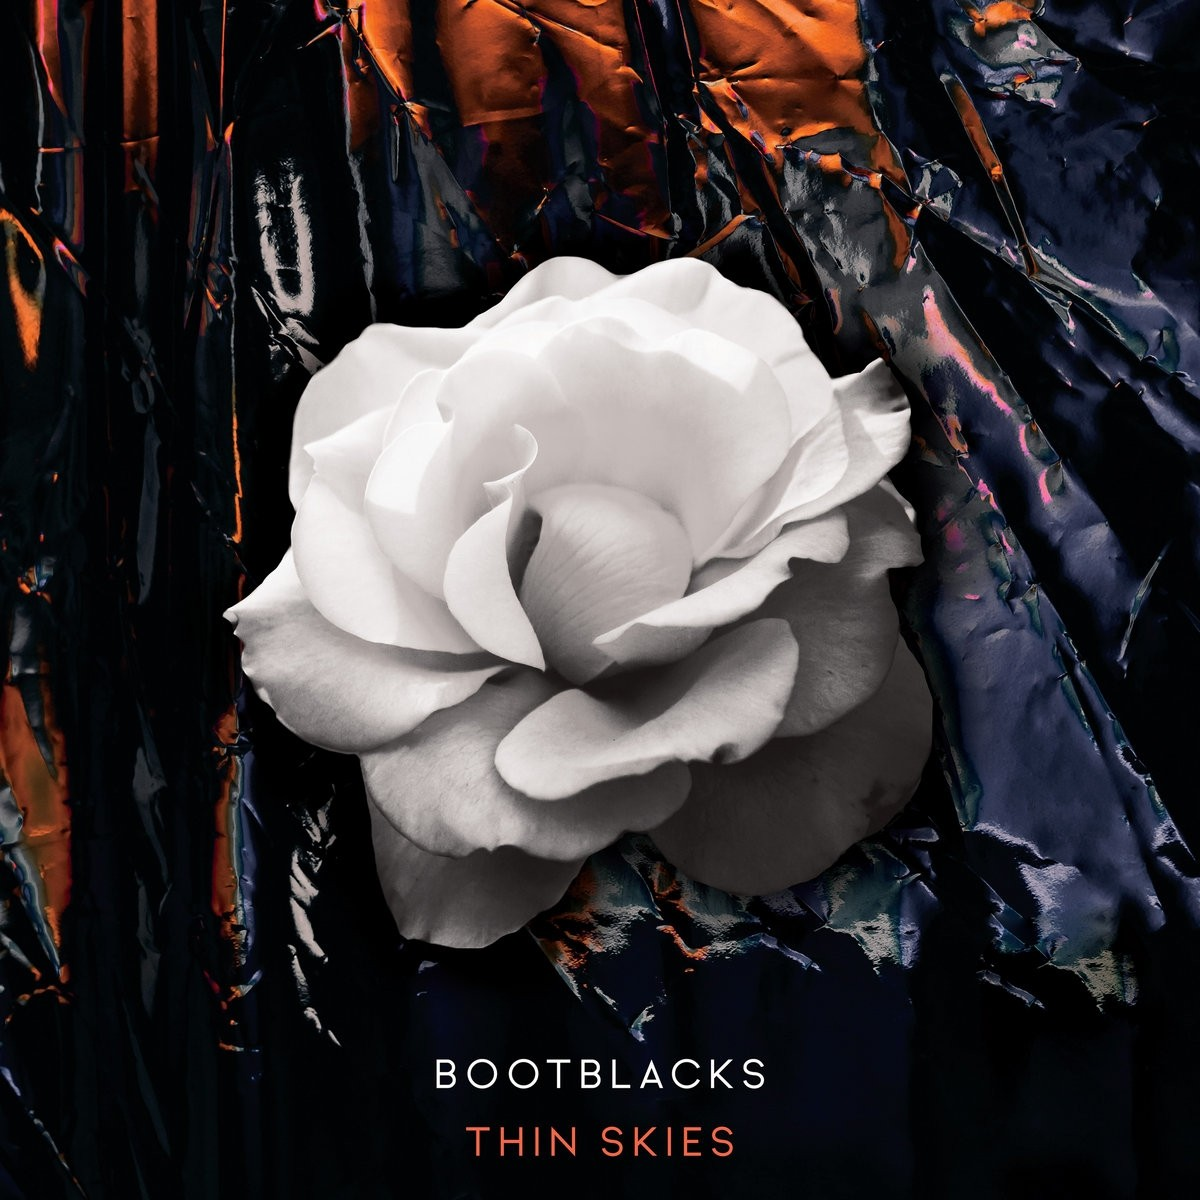 Bootblacks - Thin Skies - CD